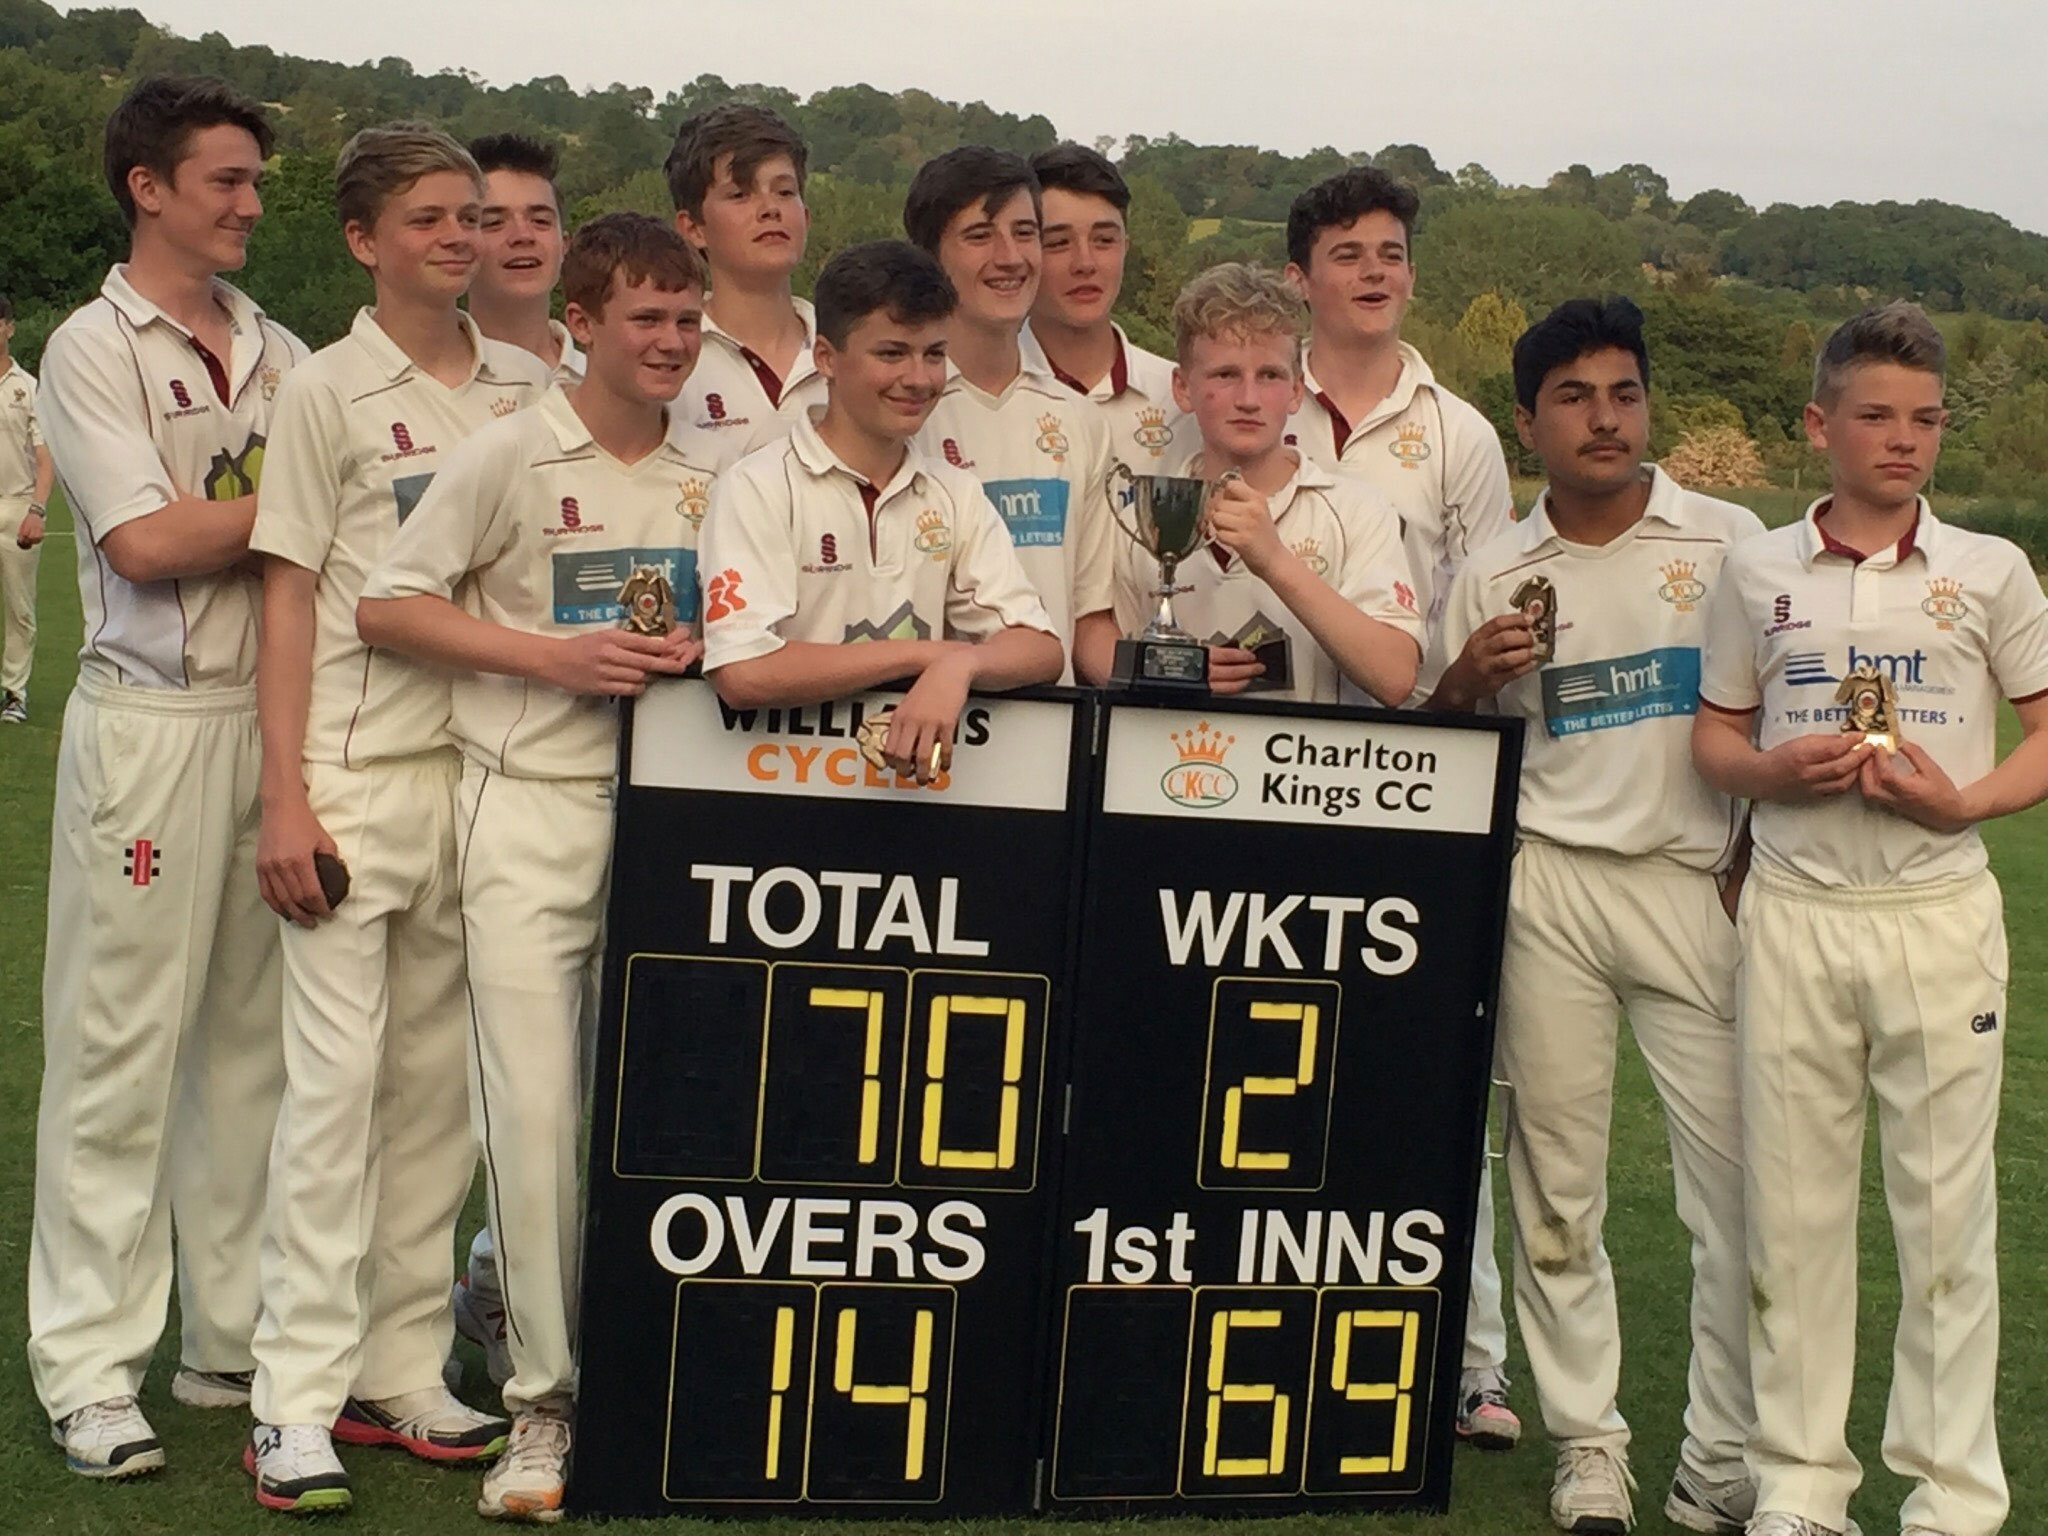 Charlton Kings beat Cheltenham to win U15 District Cup